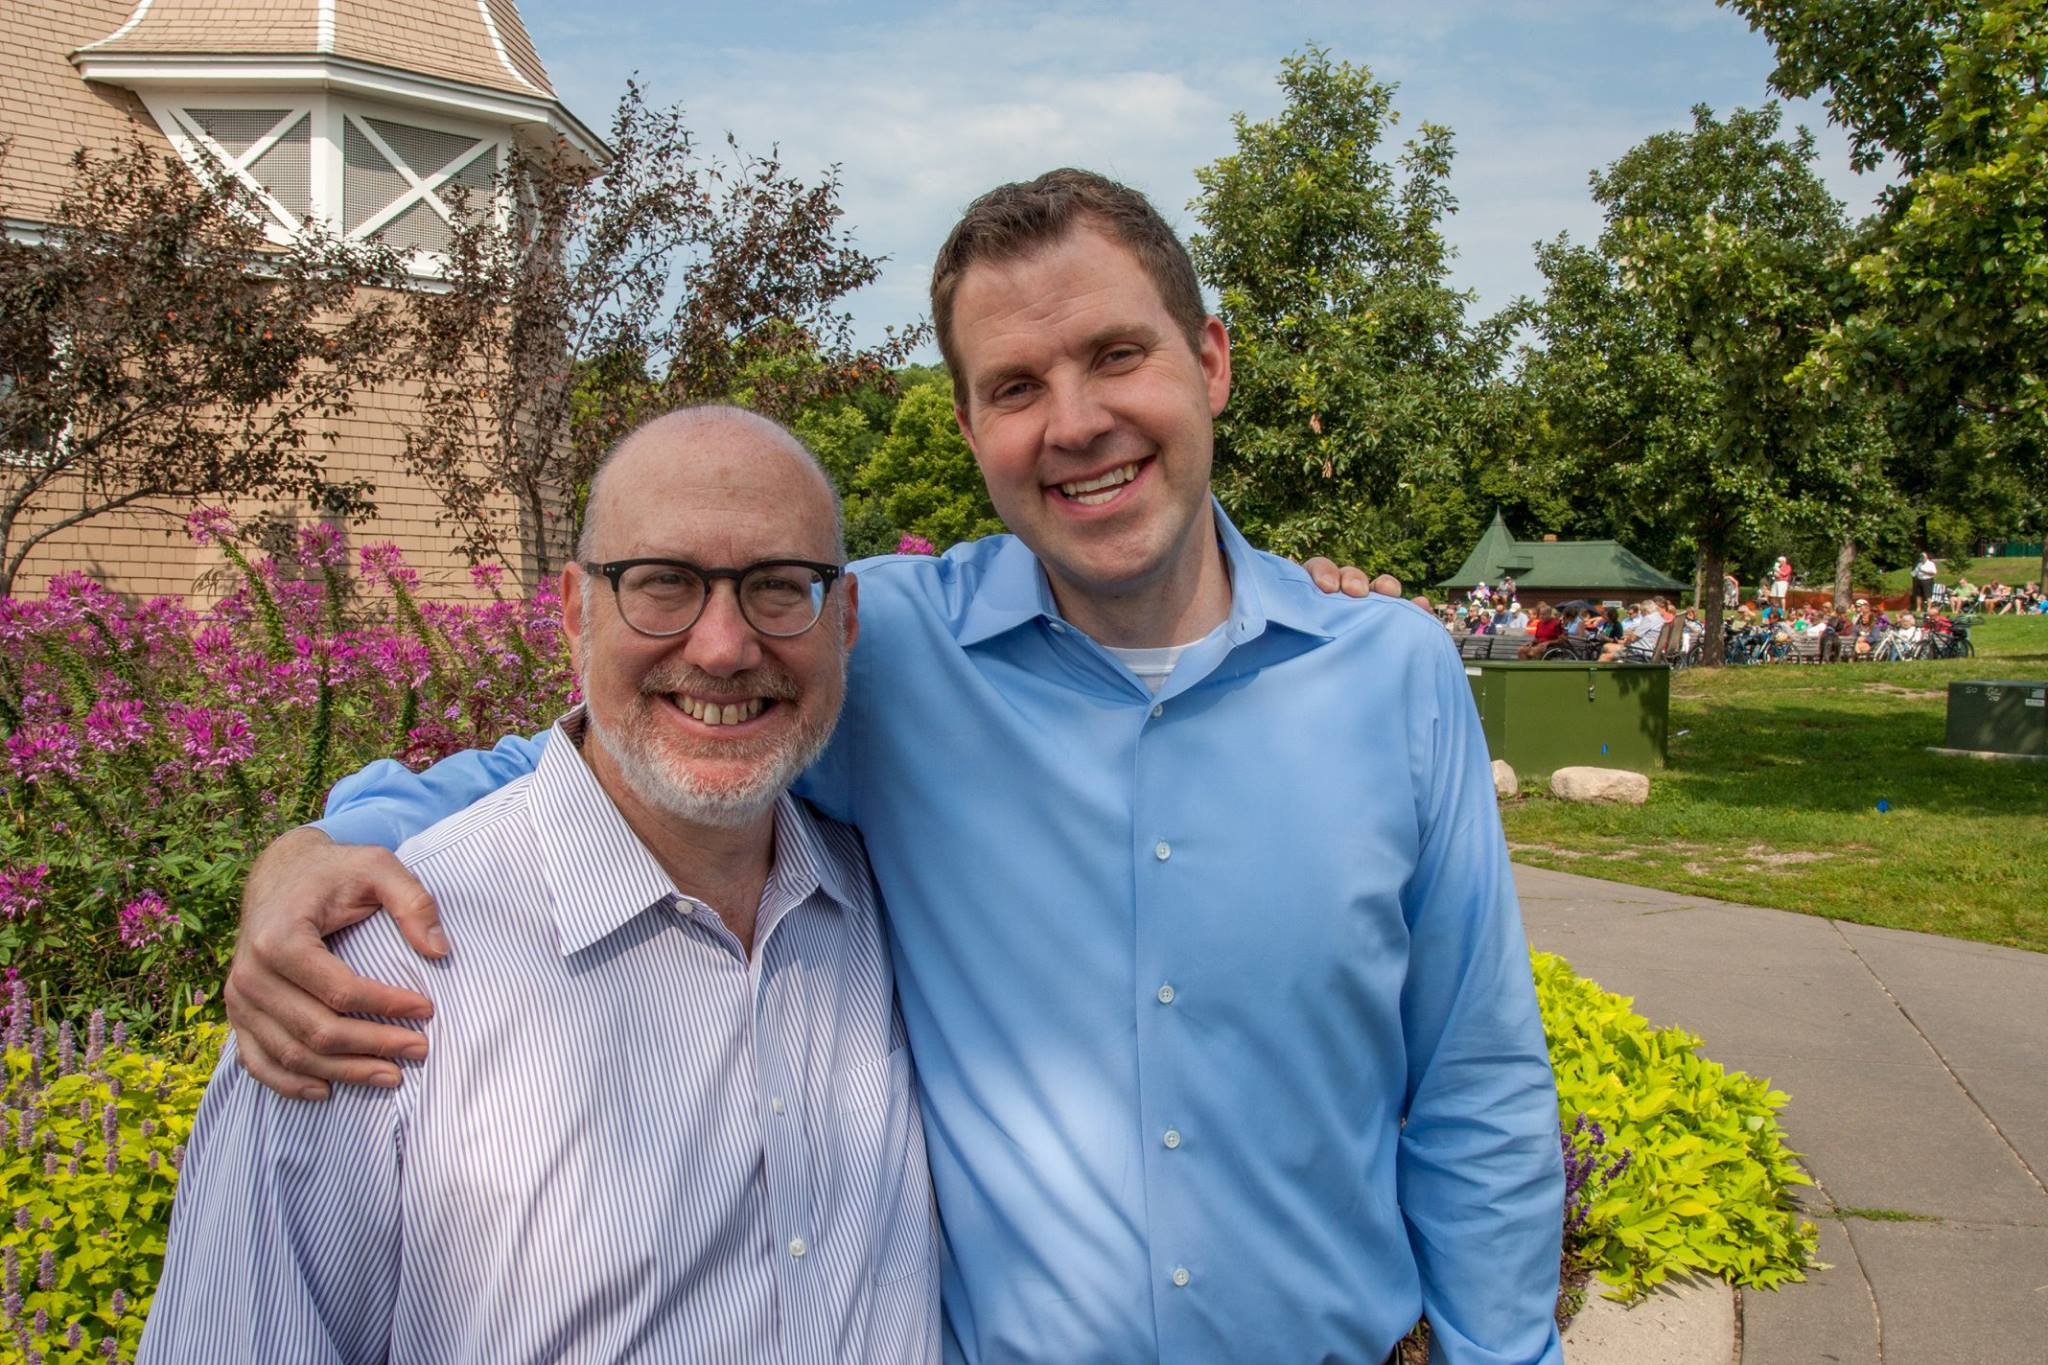 """Jamie knows the power of grassroots organizing, and has deep ties to community groups and local and state leaders. On day one, he'll have what it takes to build strong, diverse coalitions around progressive values."" Honored to have the endorsement of Representative Frank Hornstein, campaign co-chair."